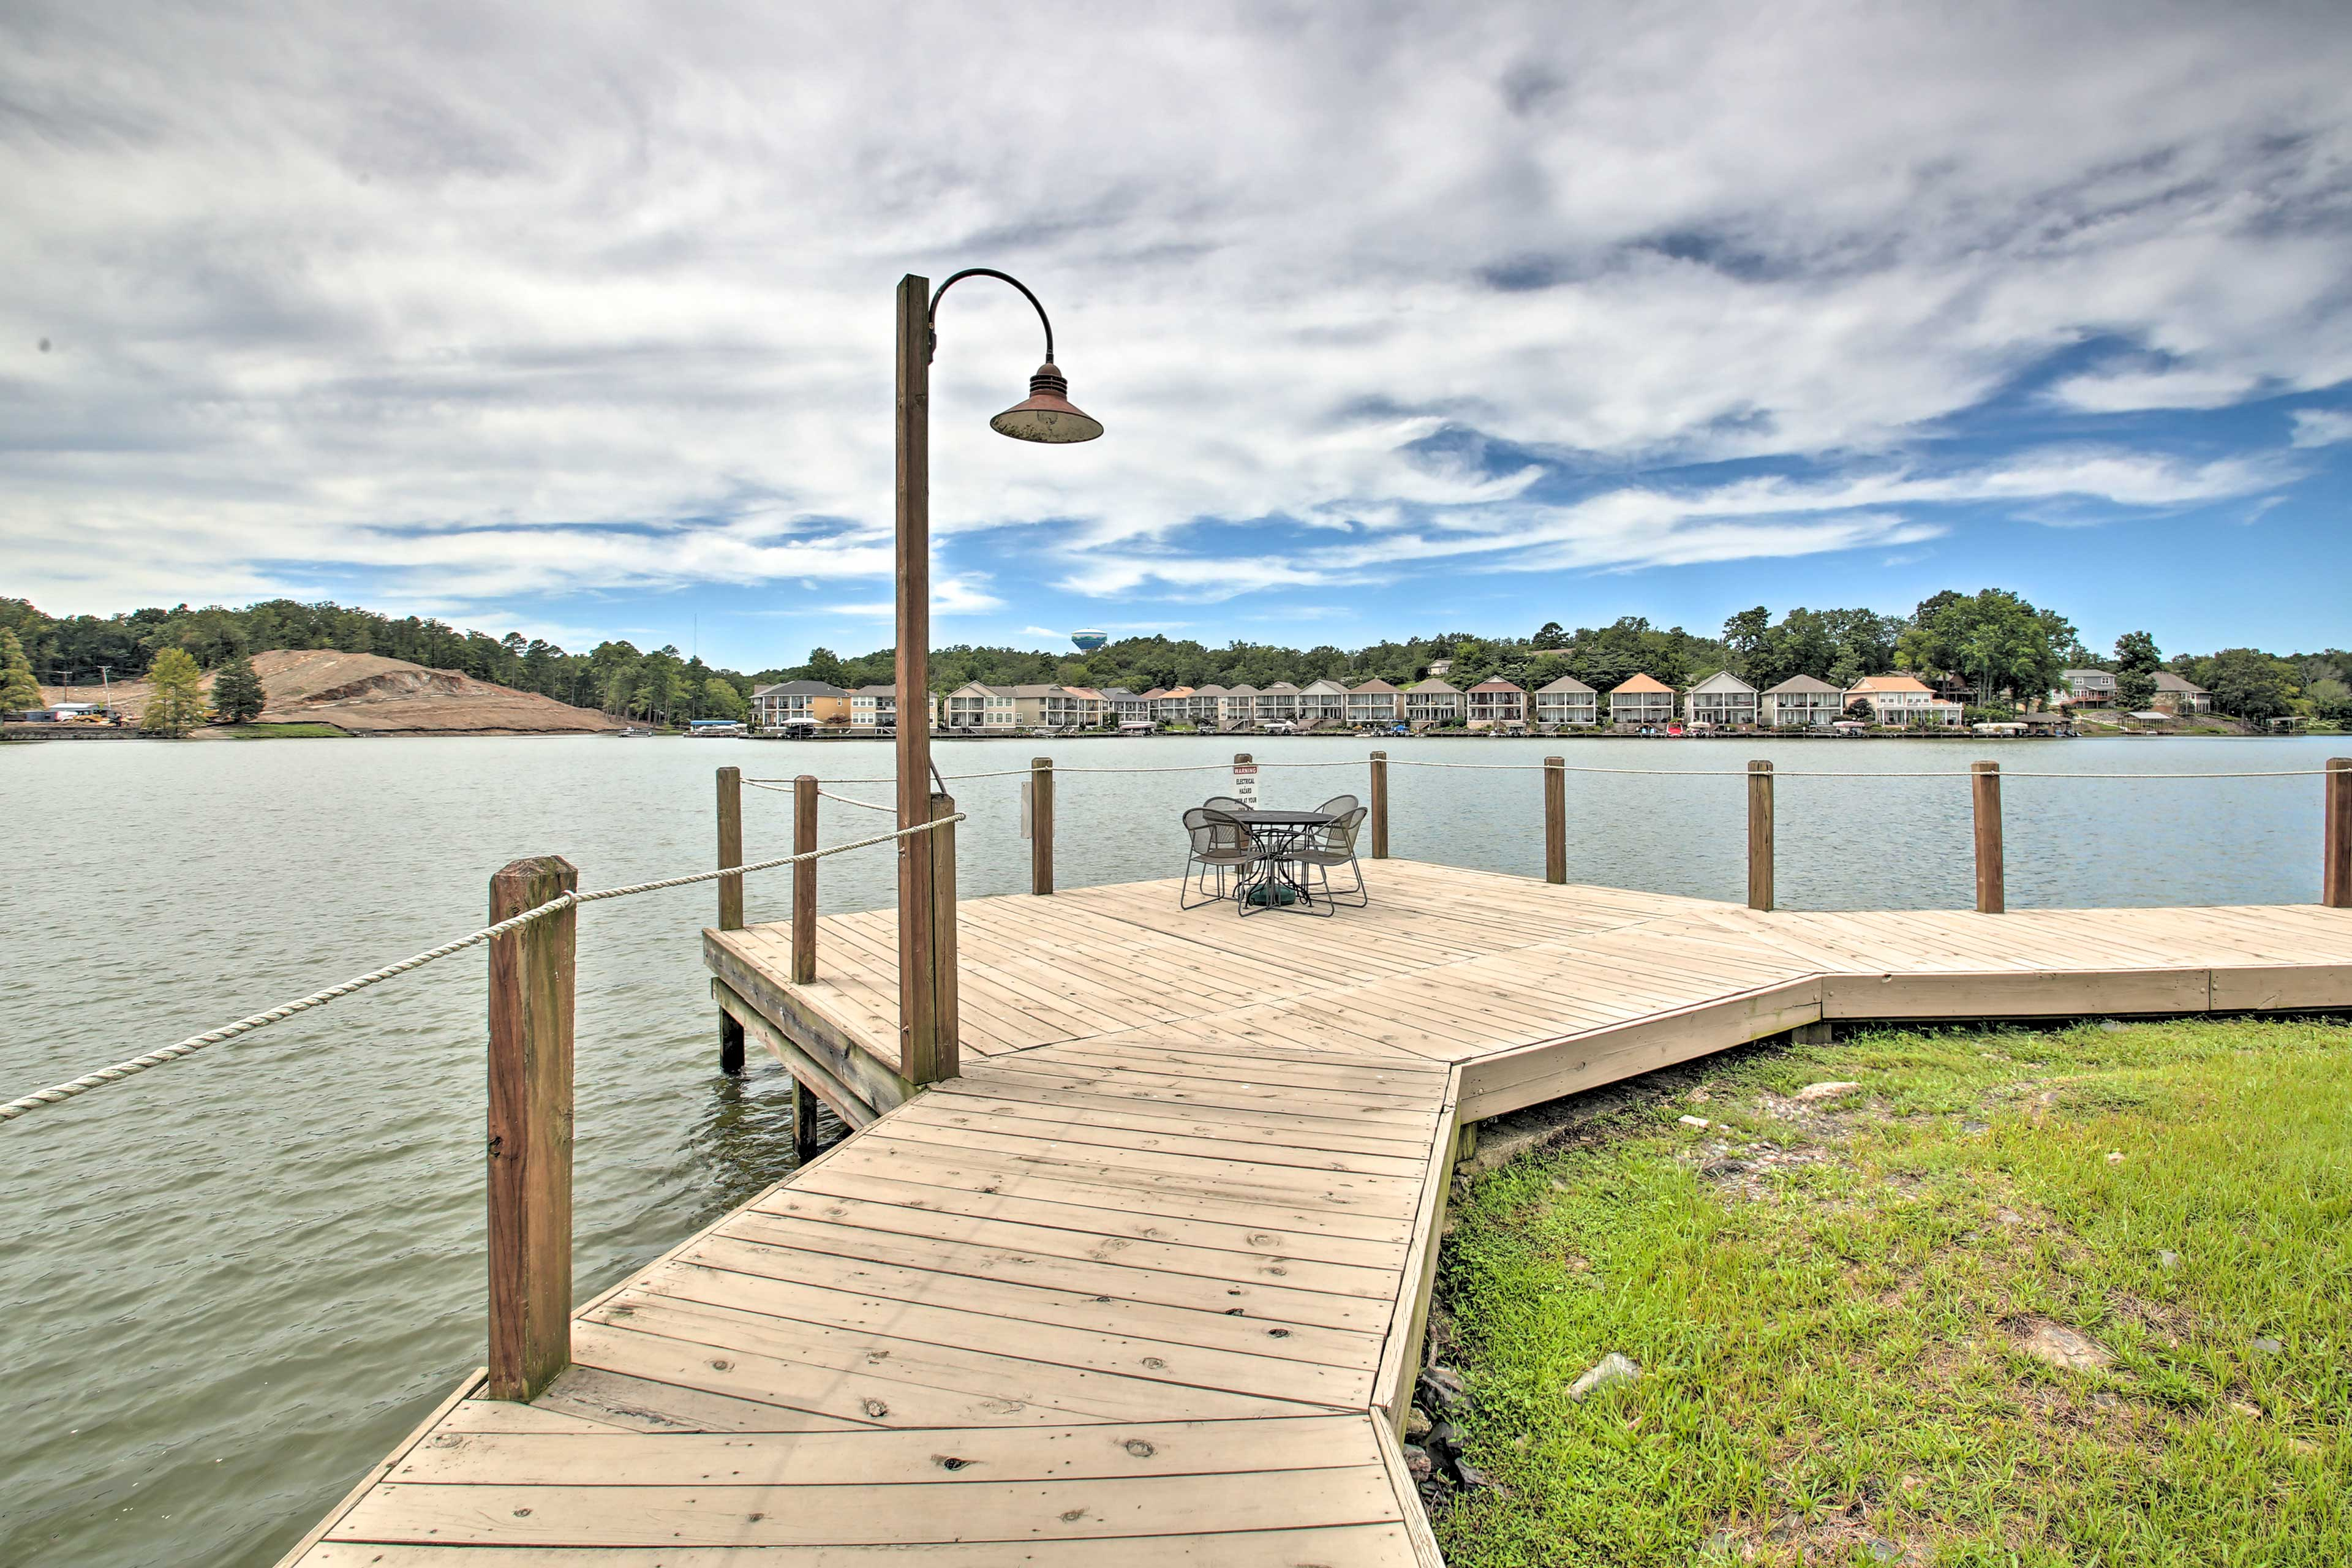 Sit out on the dock listening to the water or rent a boat to explore!